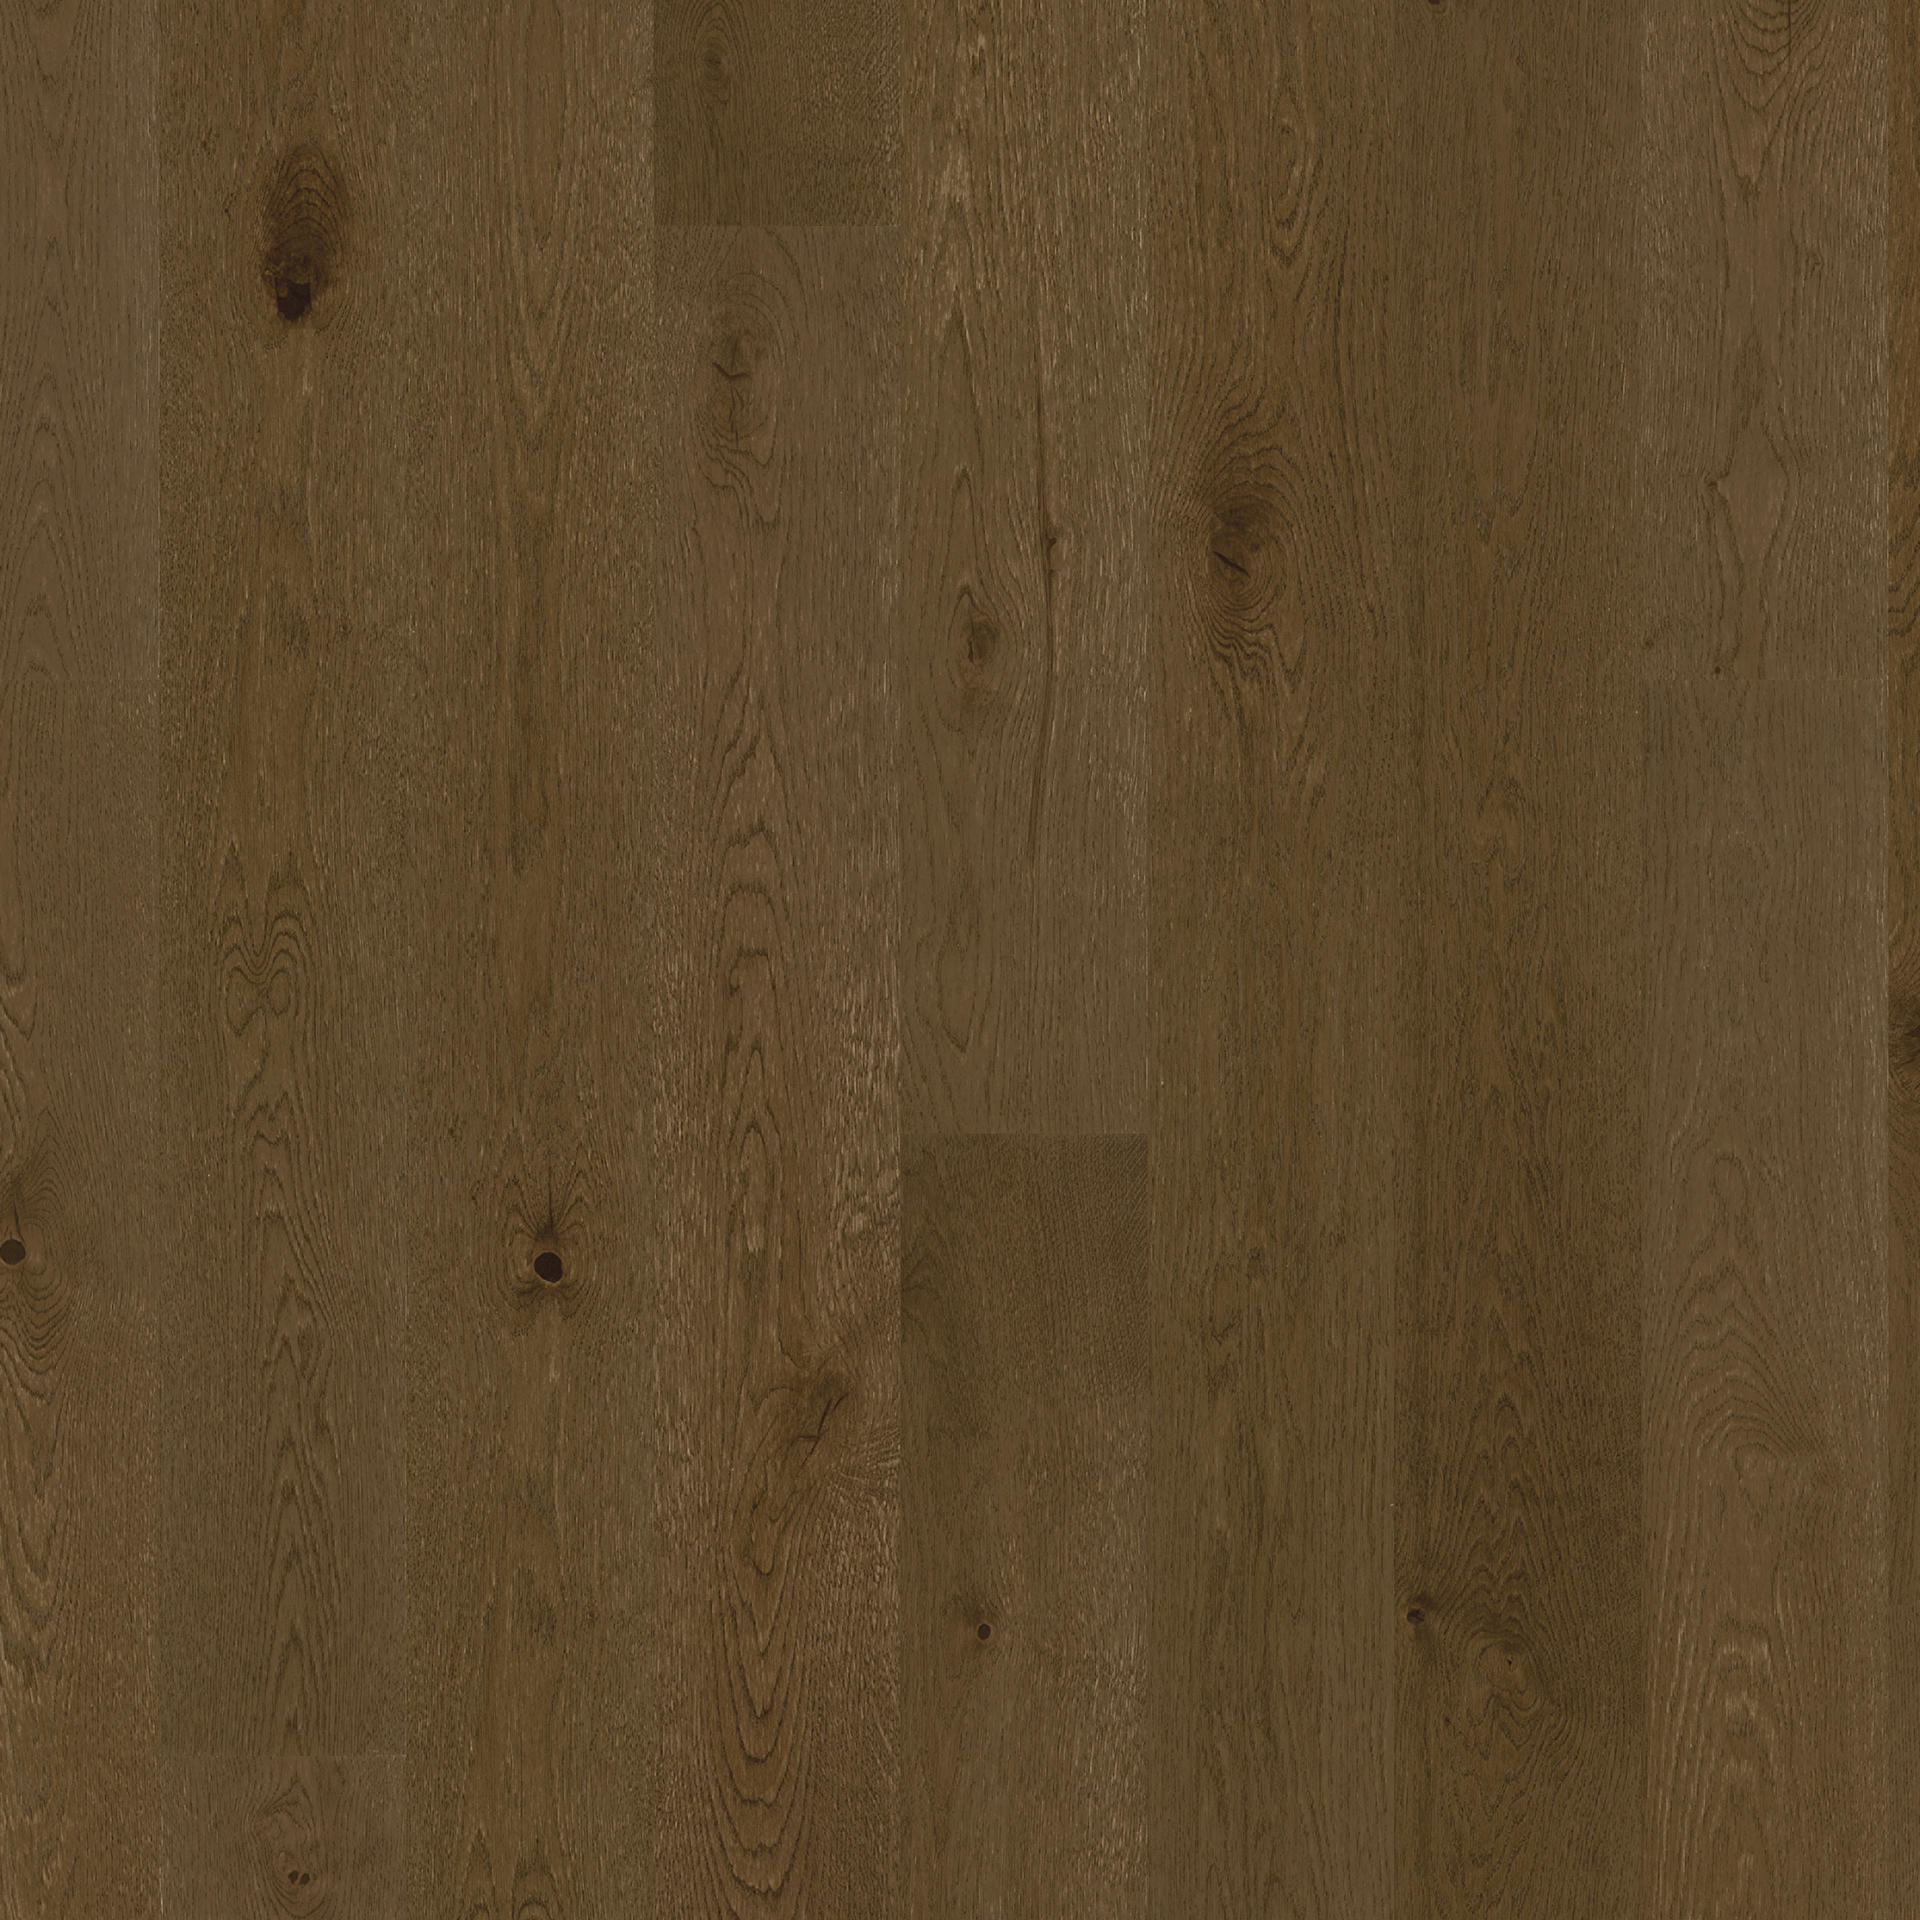 Trägolv Tarkett Shade Oak Italian Brown Plank